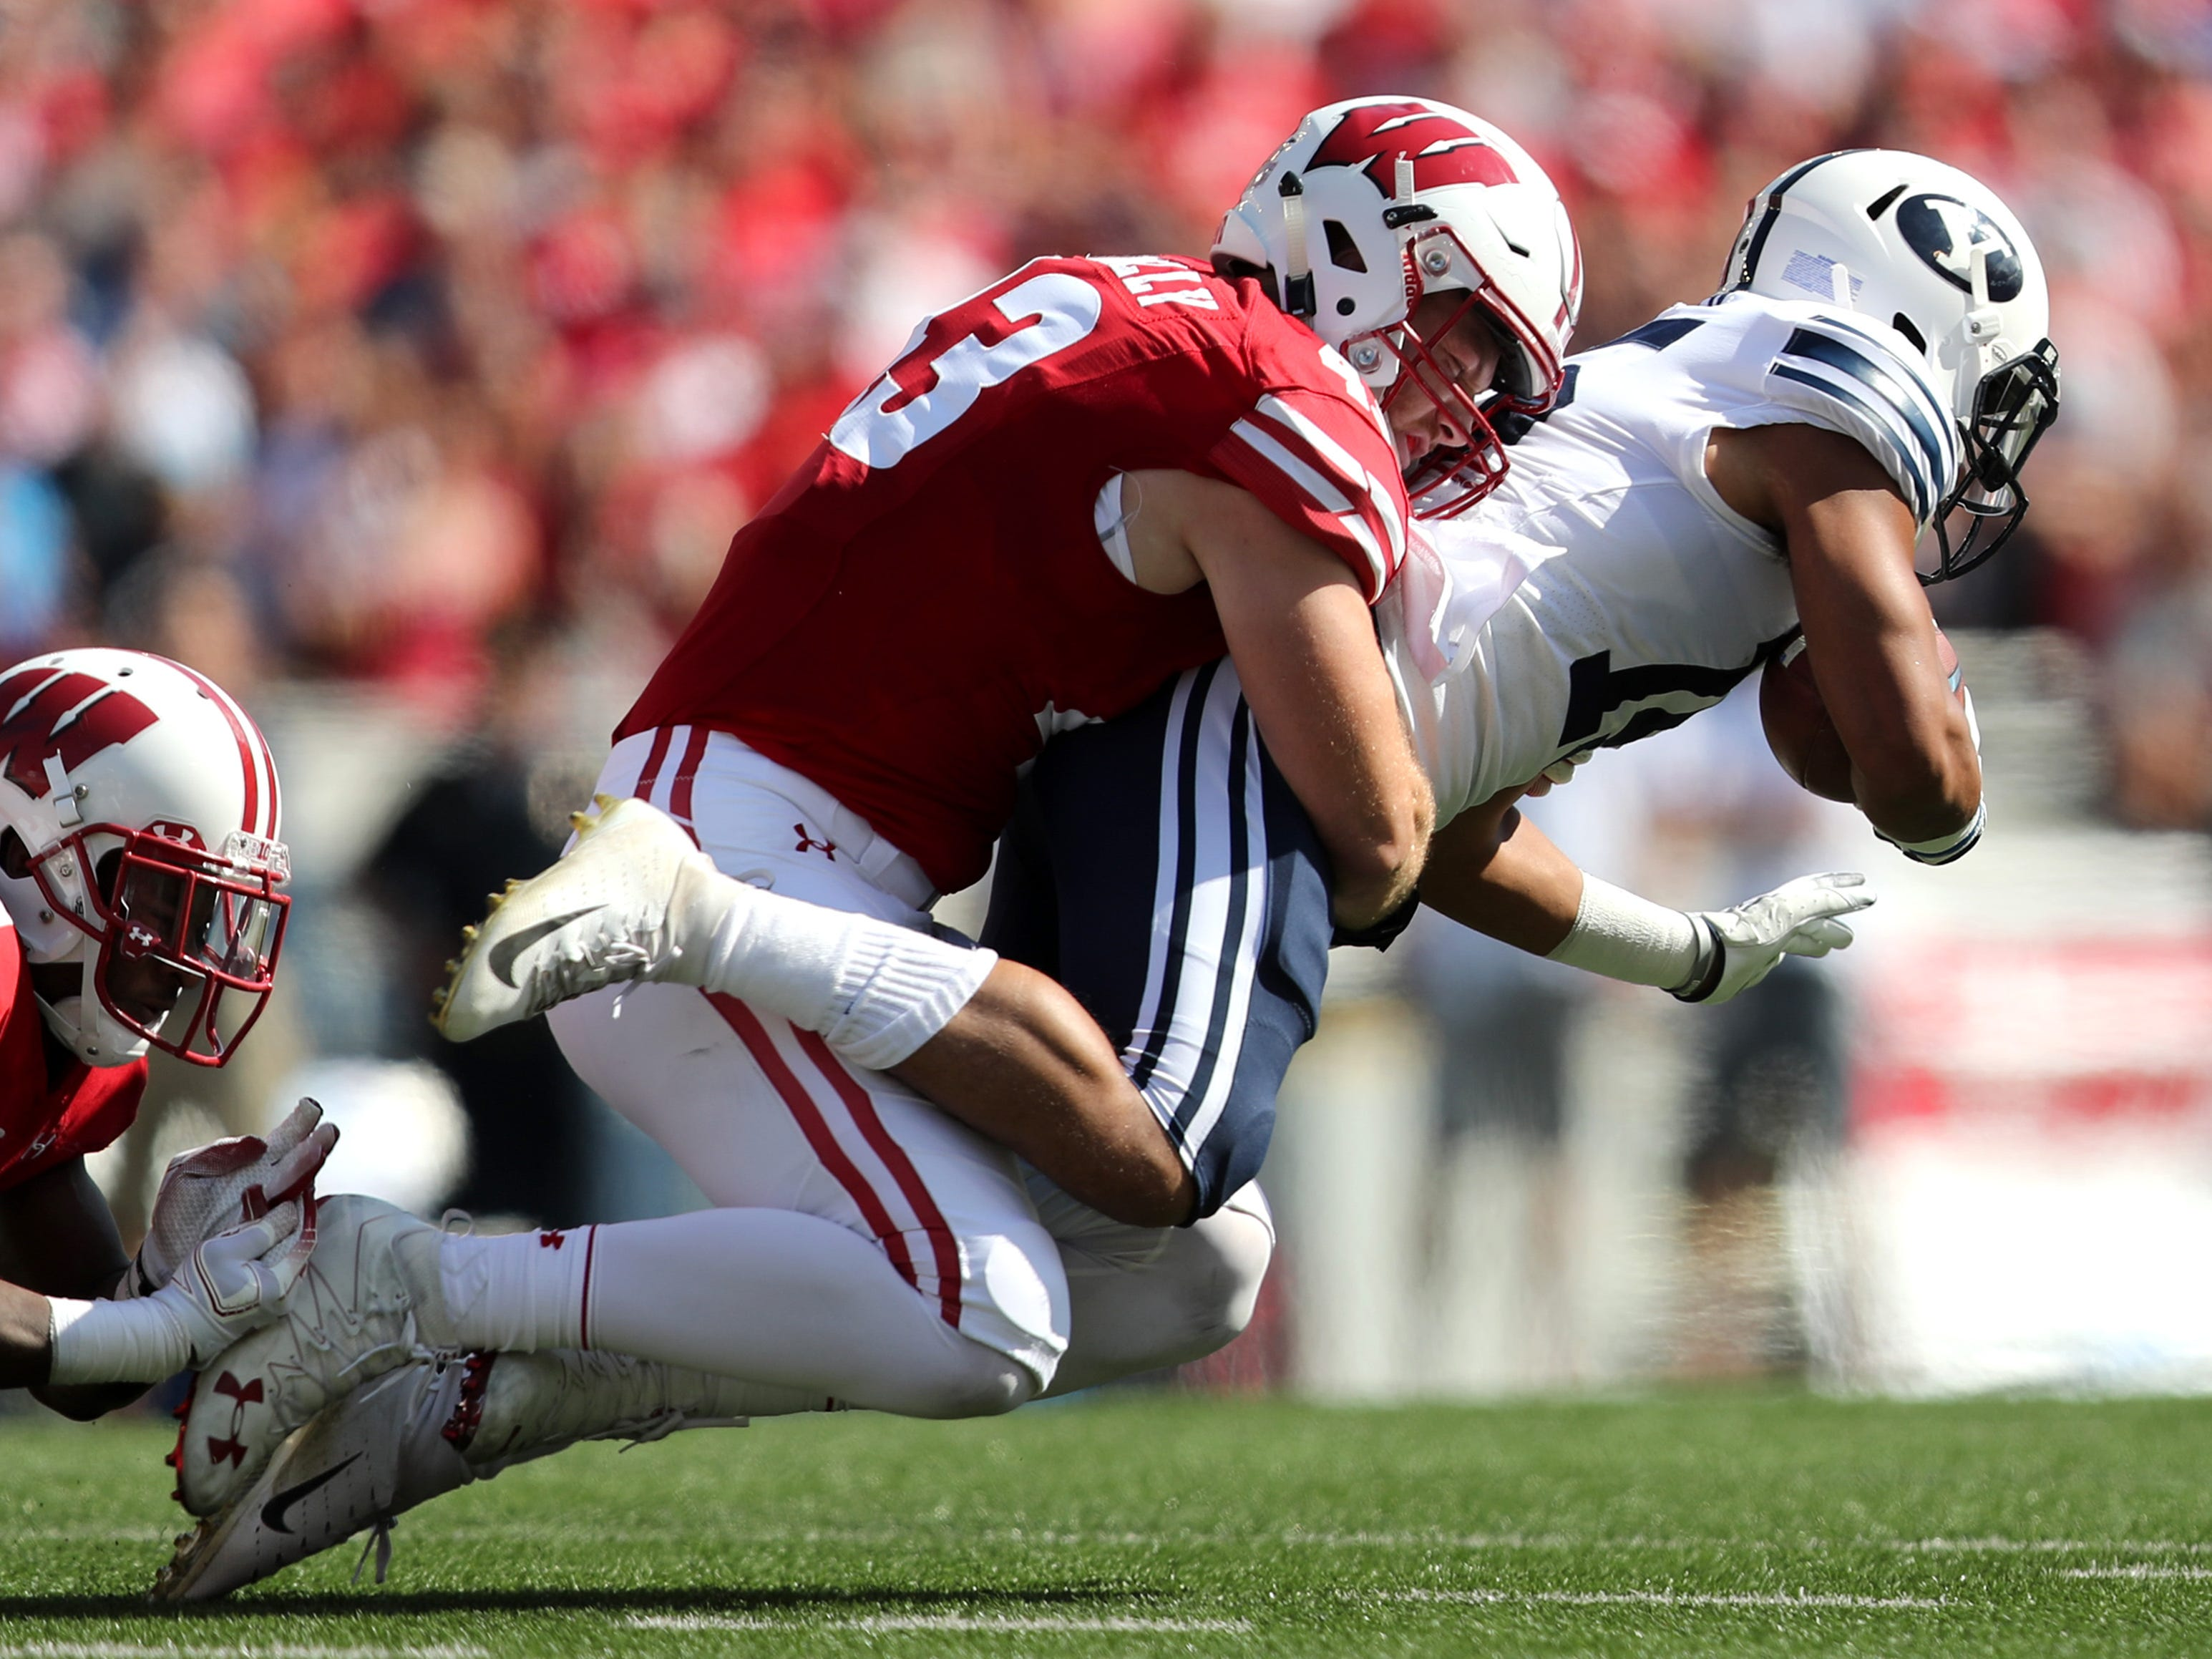 Wisconsin Badgers linebacker Ryan Connelly (43) tackles Brigham Young Cougars wide receiver Aleva Hifo.